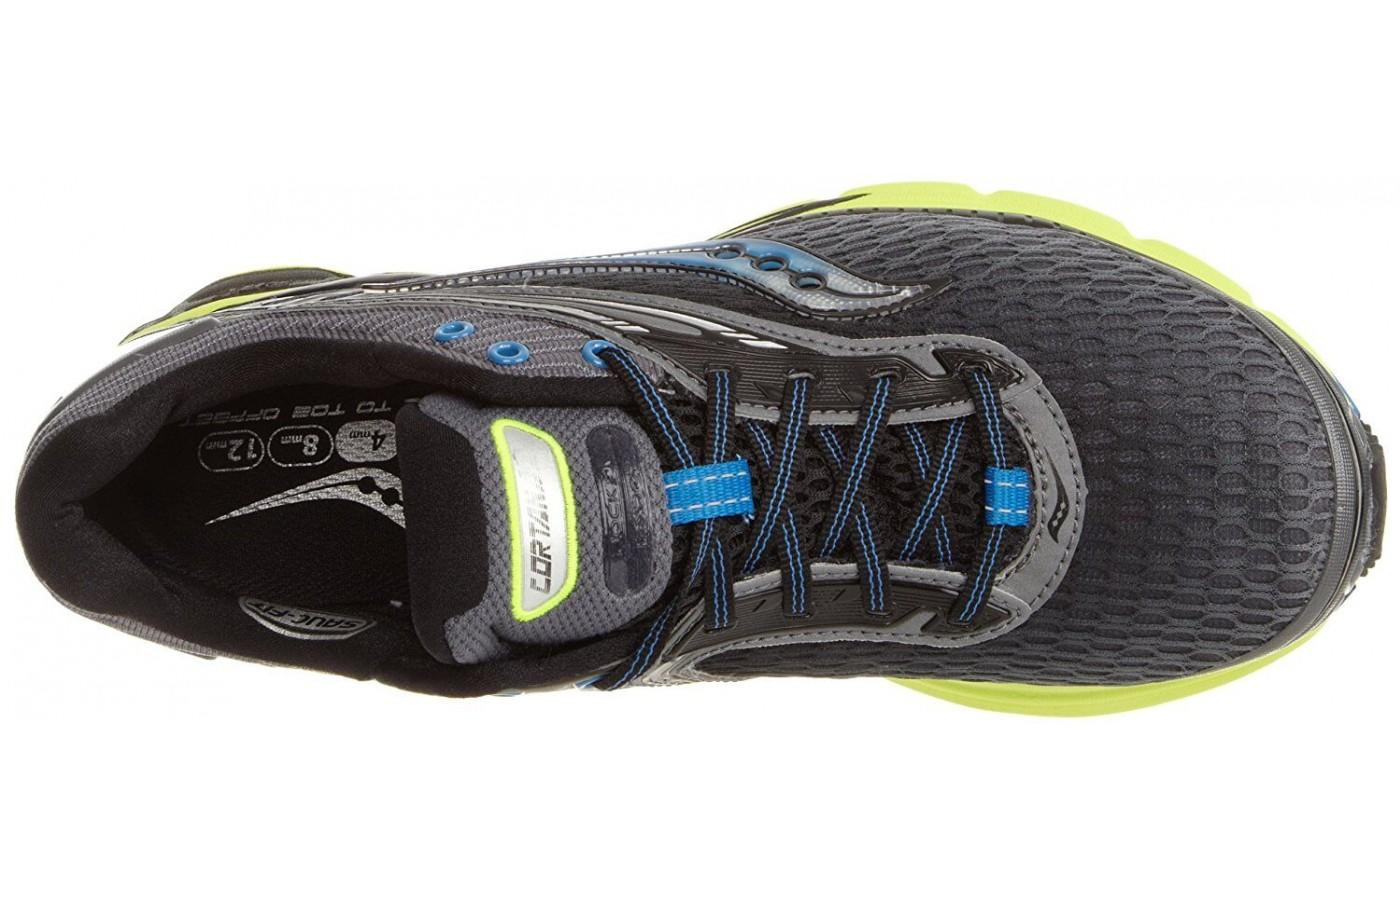 Saucony Cortana 2 has a breathable, comfortable upper